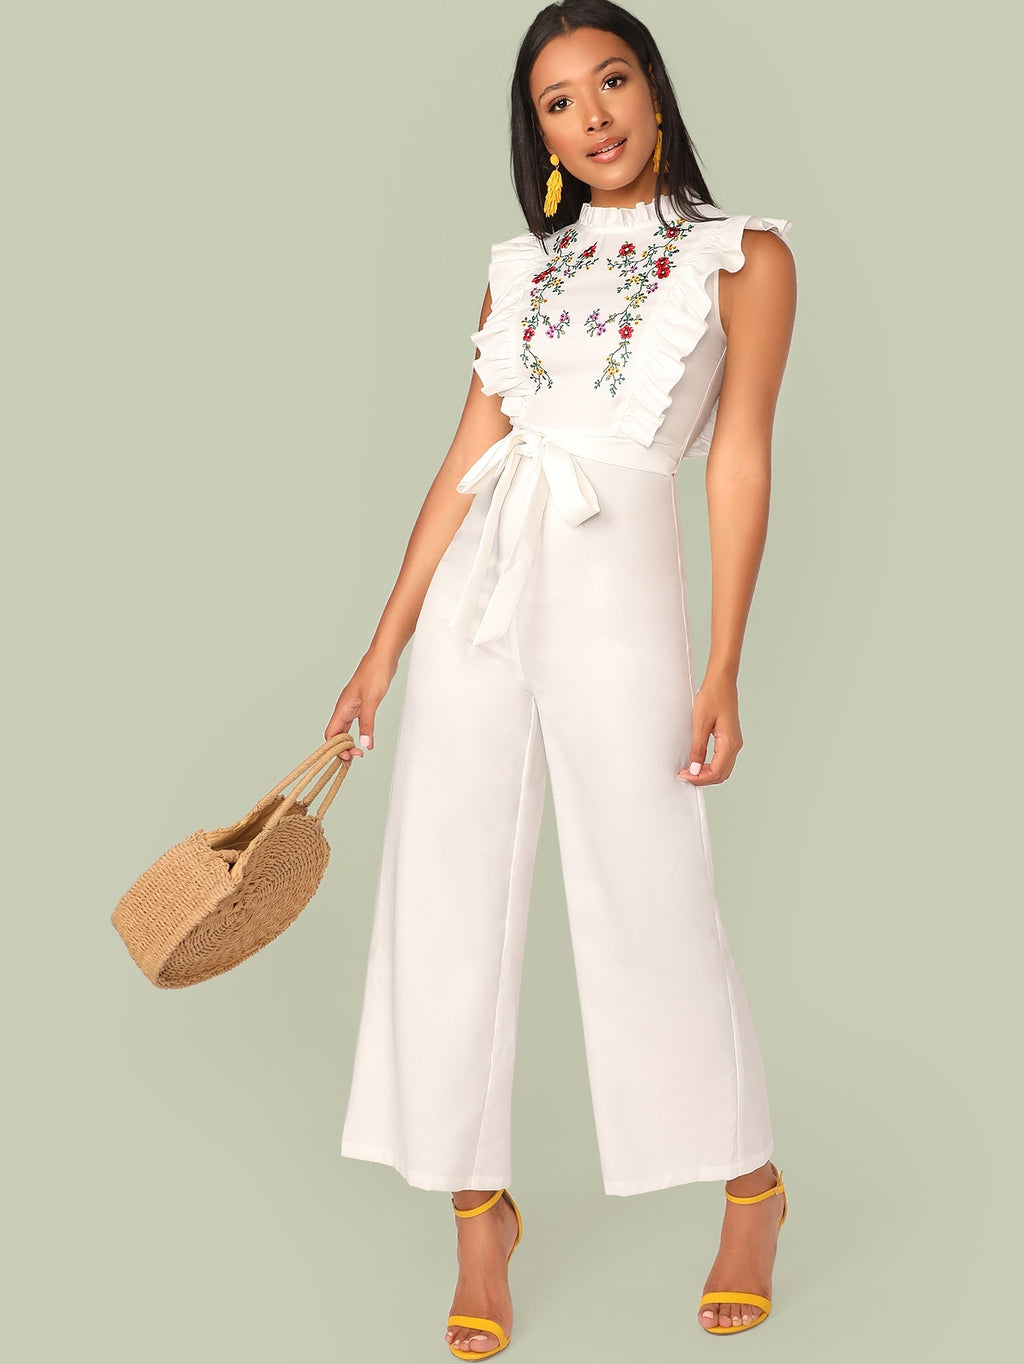 Mock Neck Ruffle Trim Embroidery Belted Palazzo Jumpsuit (4384712556609)